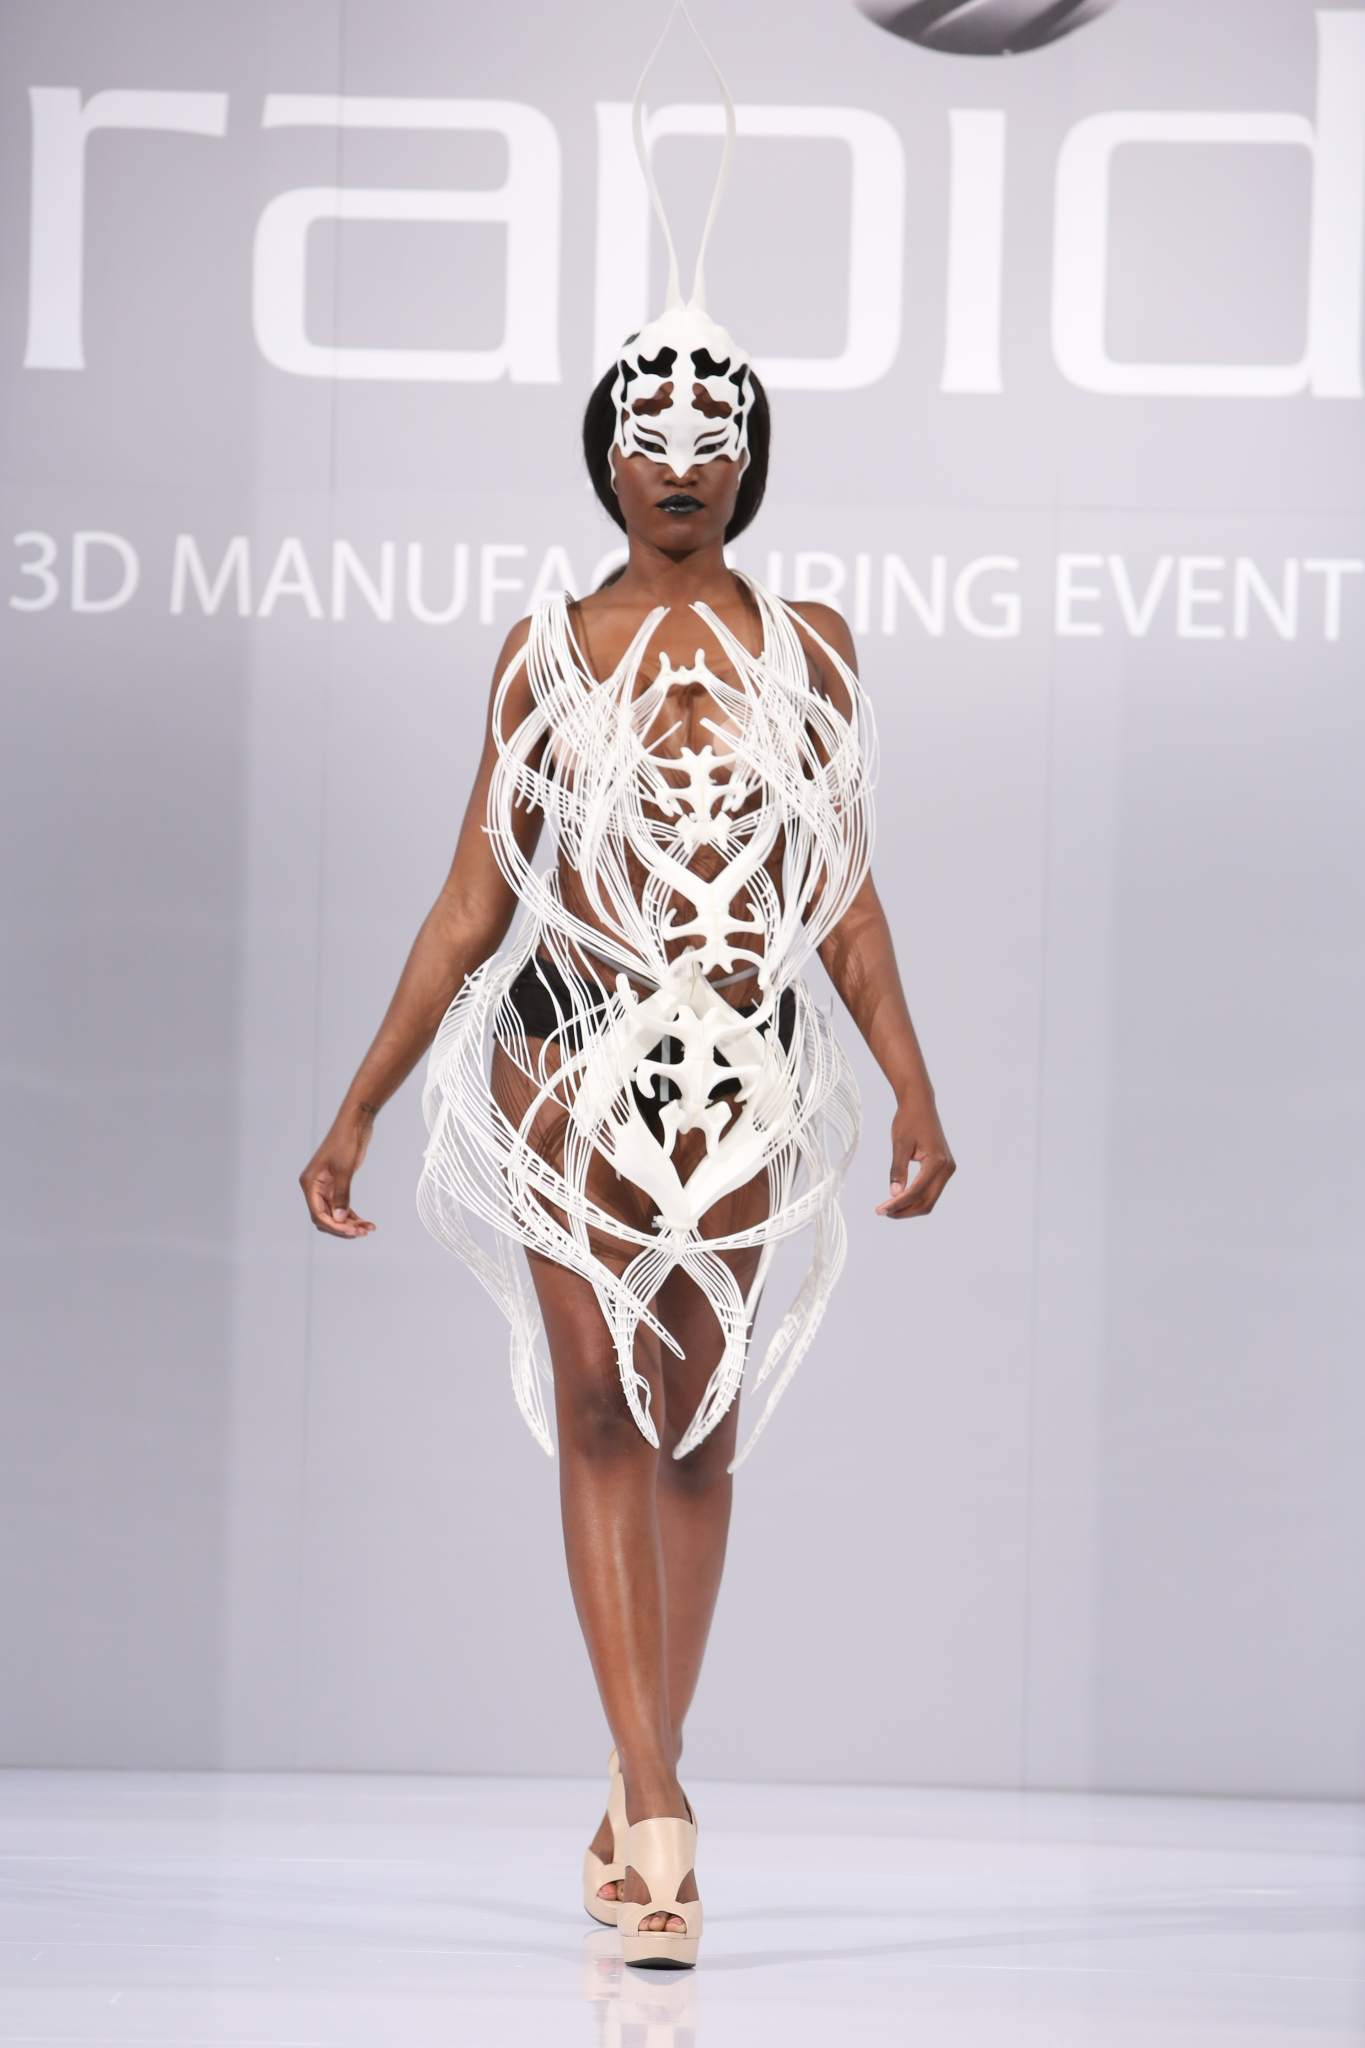 The RAPID 2016 3D Fashion Show featured 3D printed designs from several fashion designers. Photo via SME.